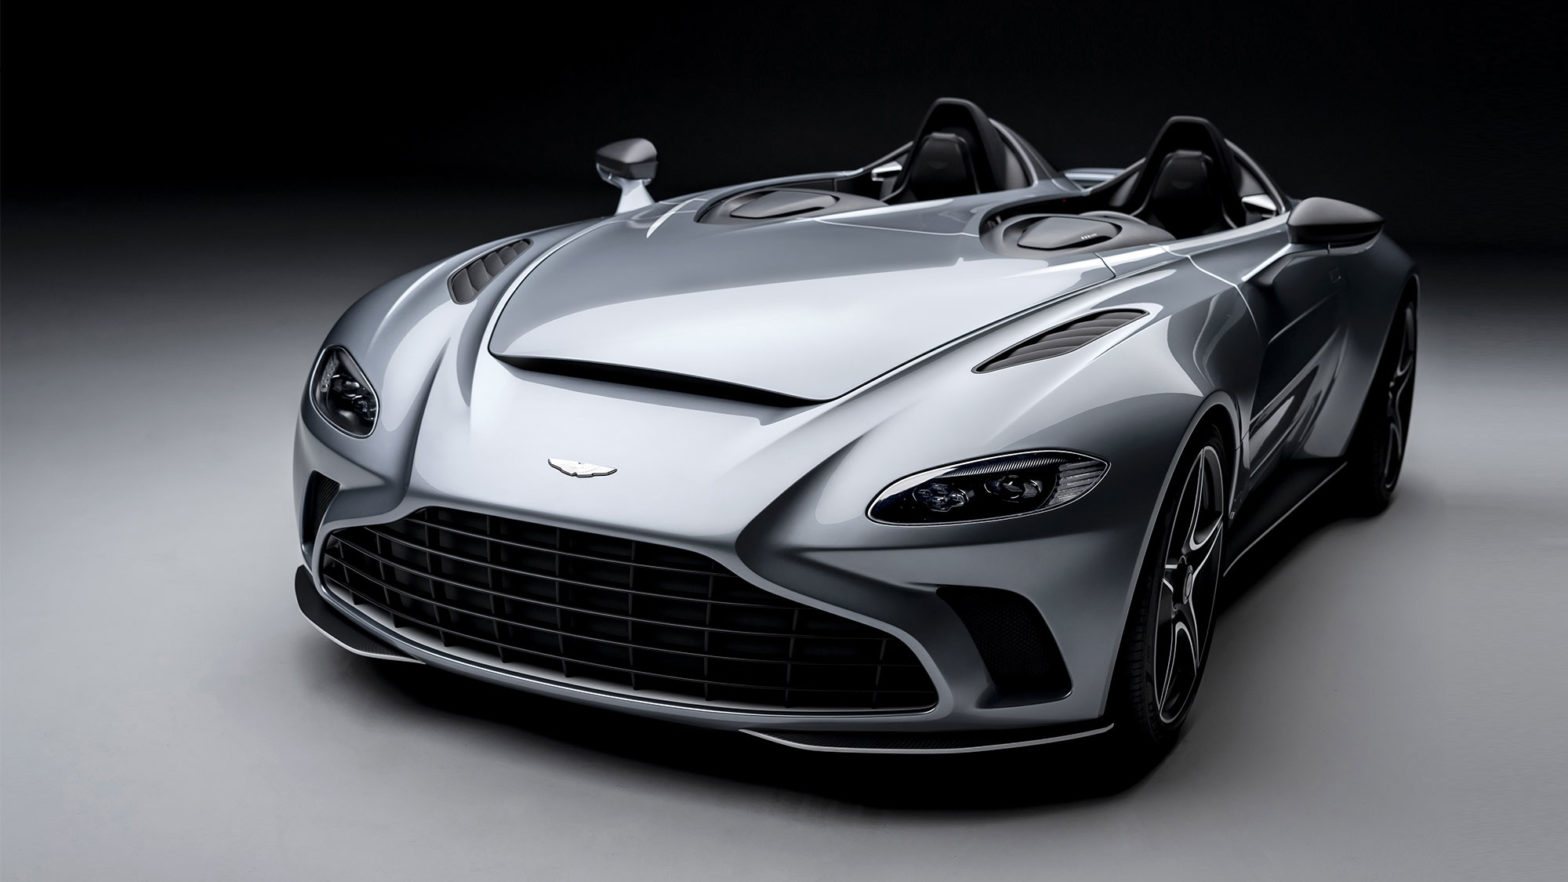 Limited Edition Aston Martin V12 Speeder Revealed